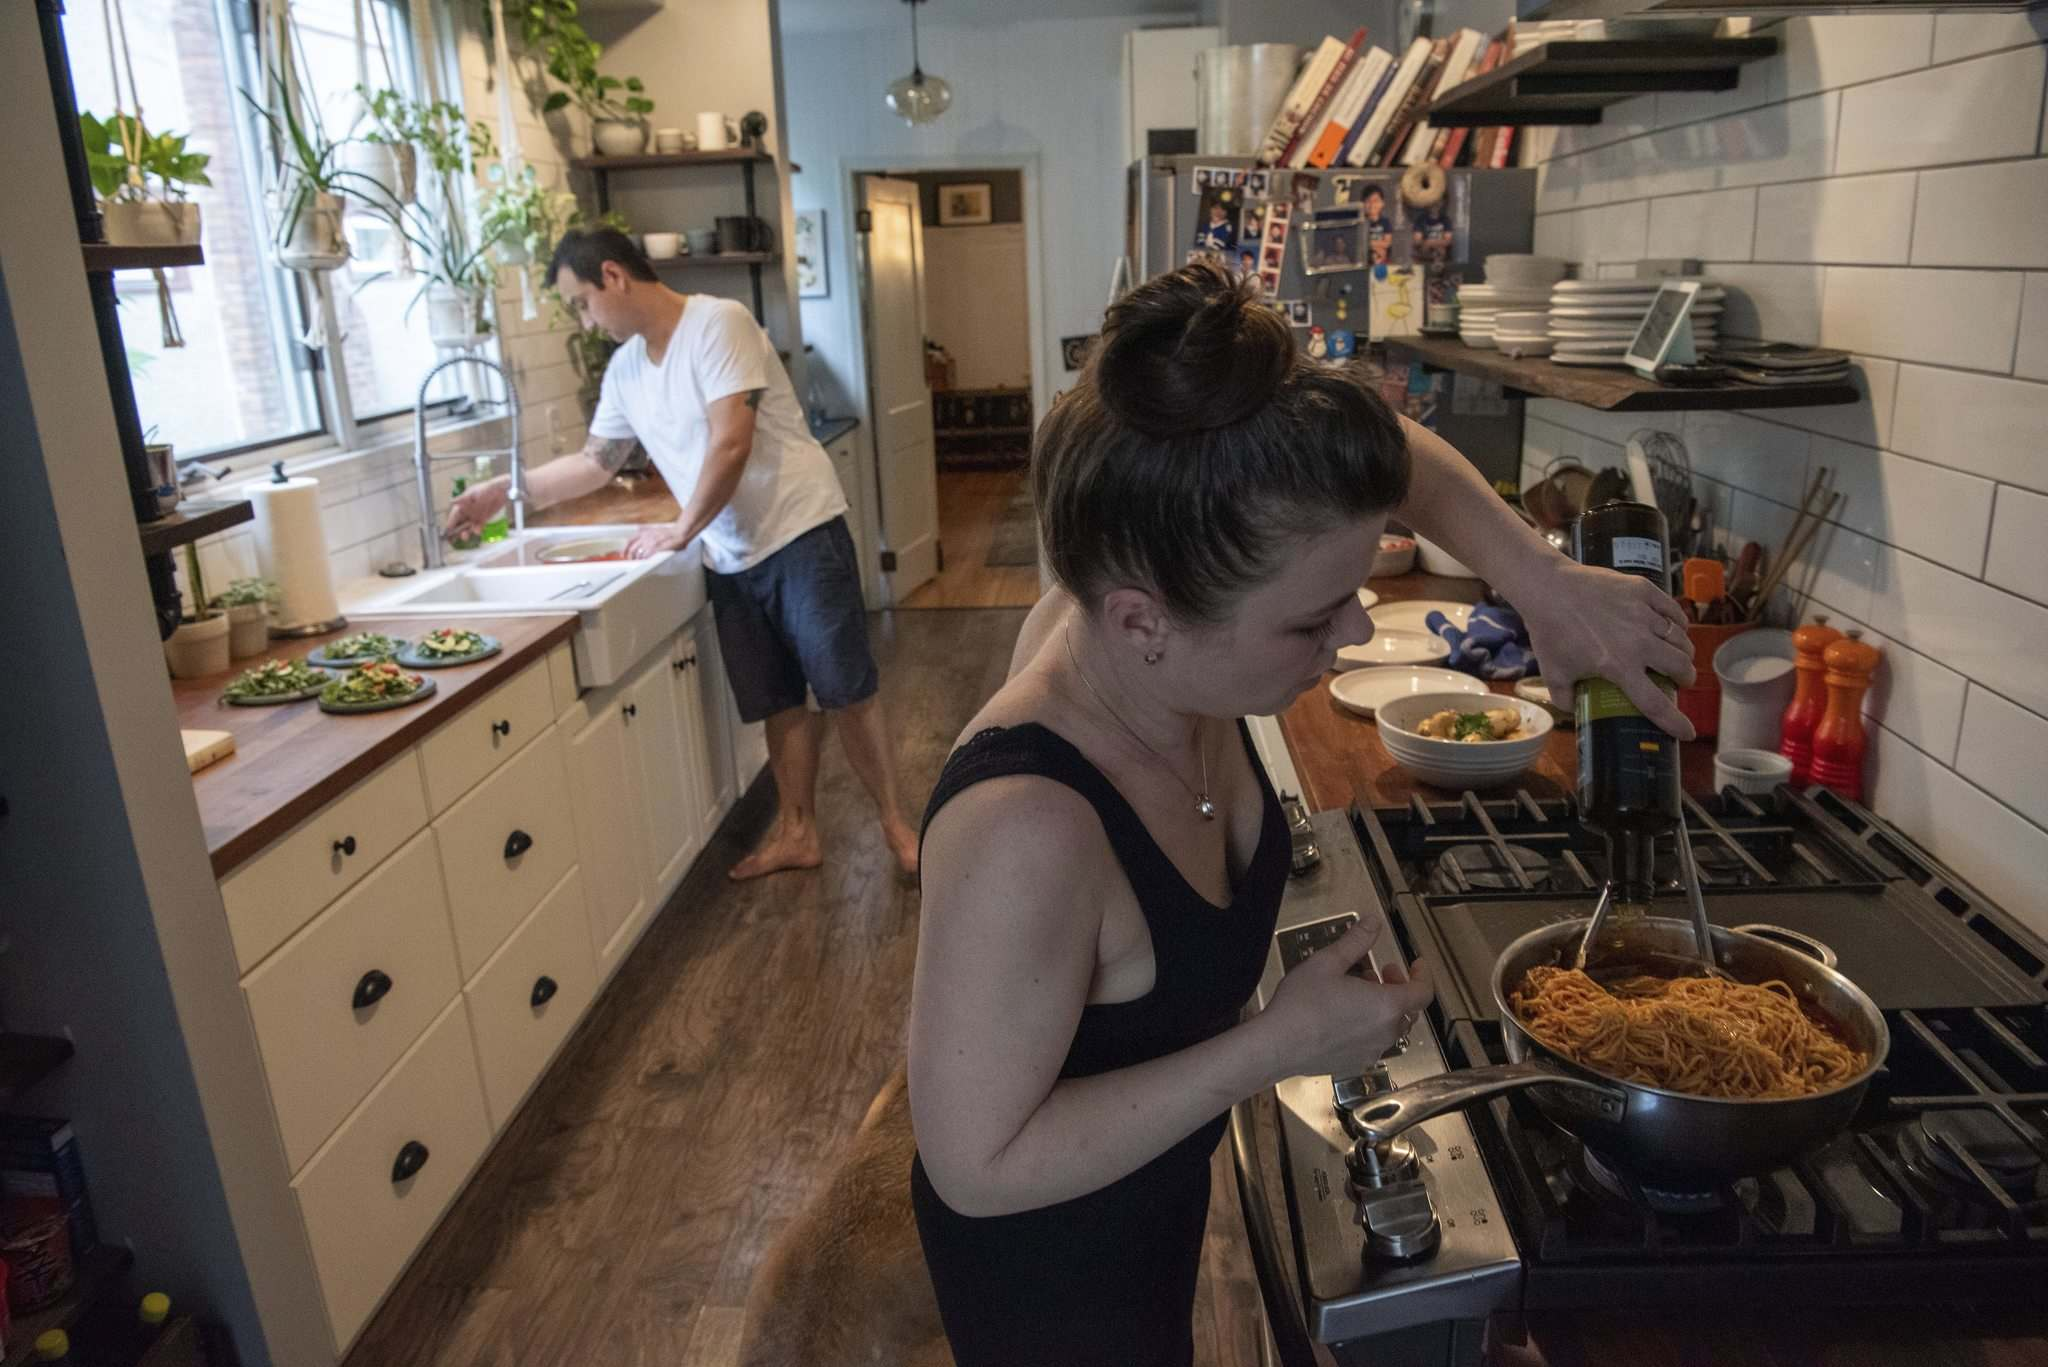 photos by ALEX LUPUL / WINNIPEG FREE PRESS</p><p>Kristen Chemerika-Lew, right, and Kyle Lew are a culinary team in their home kitchen and at their Exchange District resto, Lark.</p>